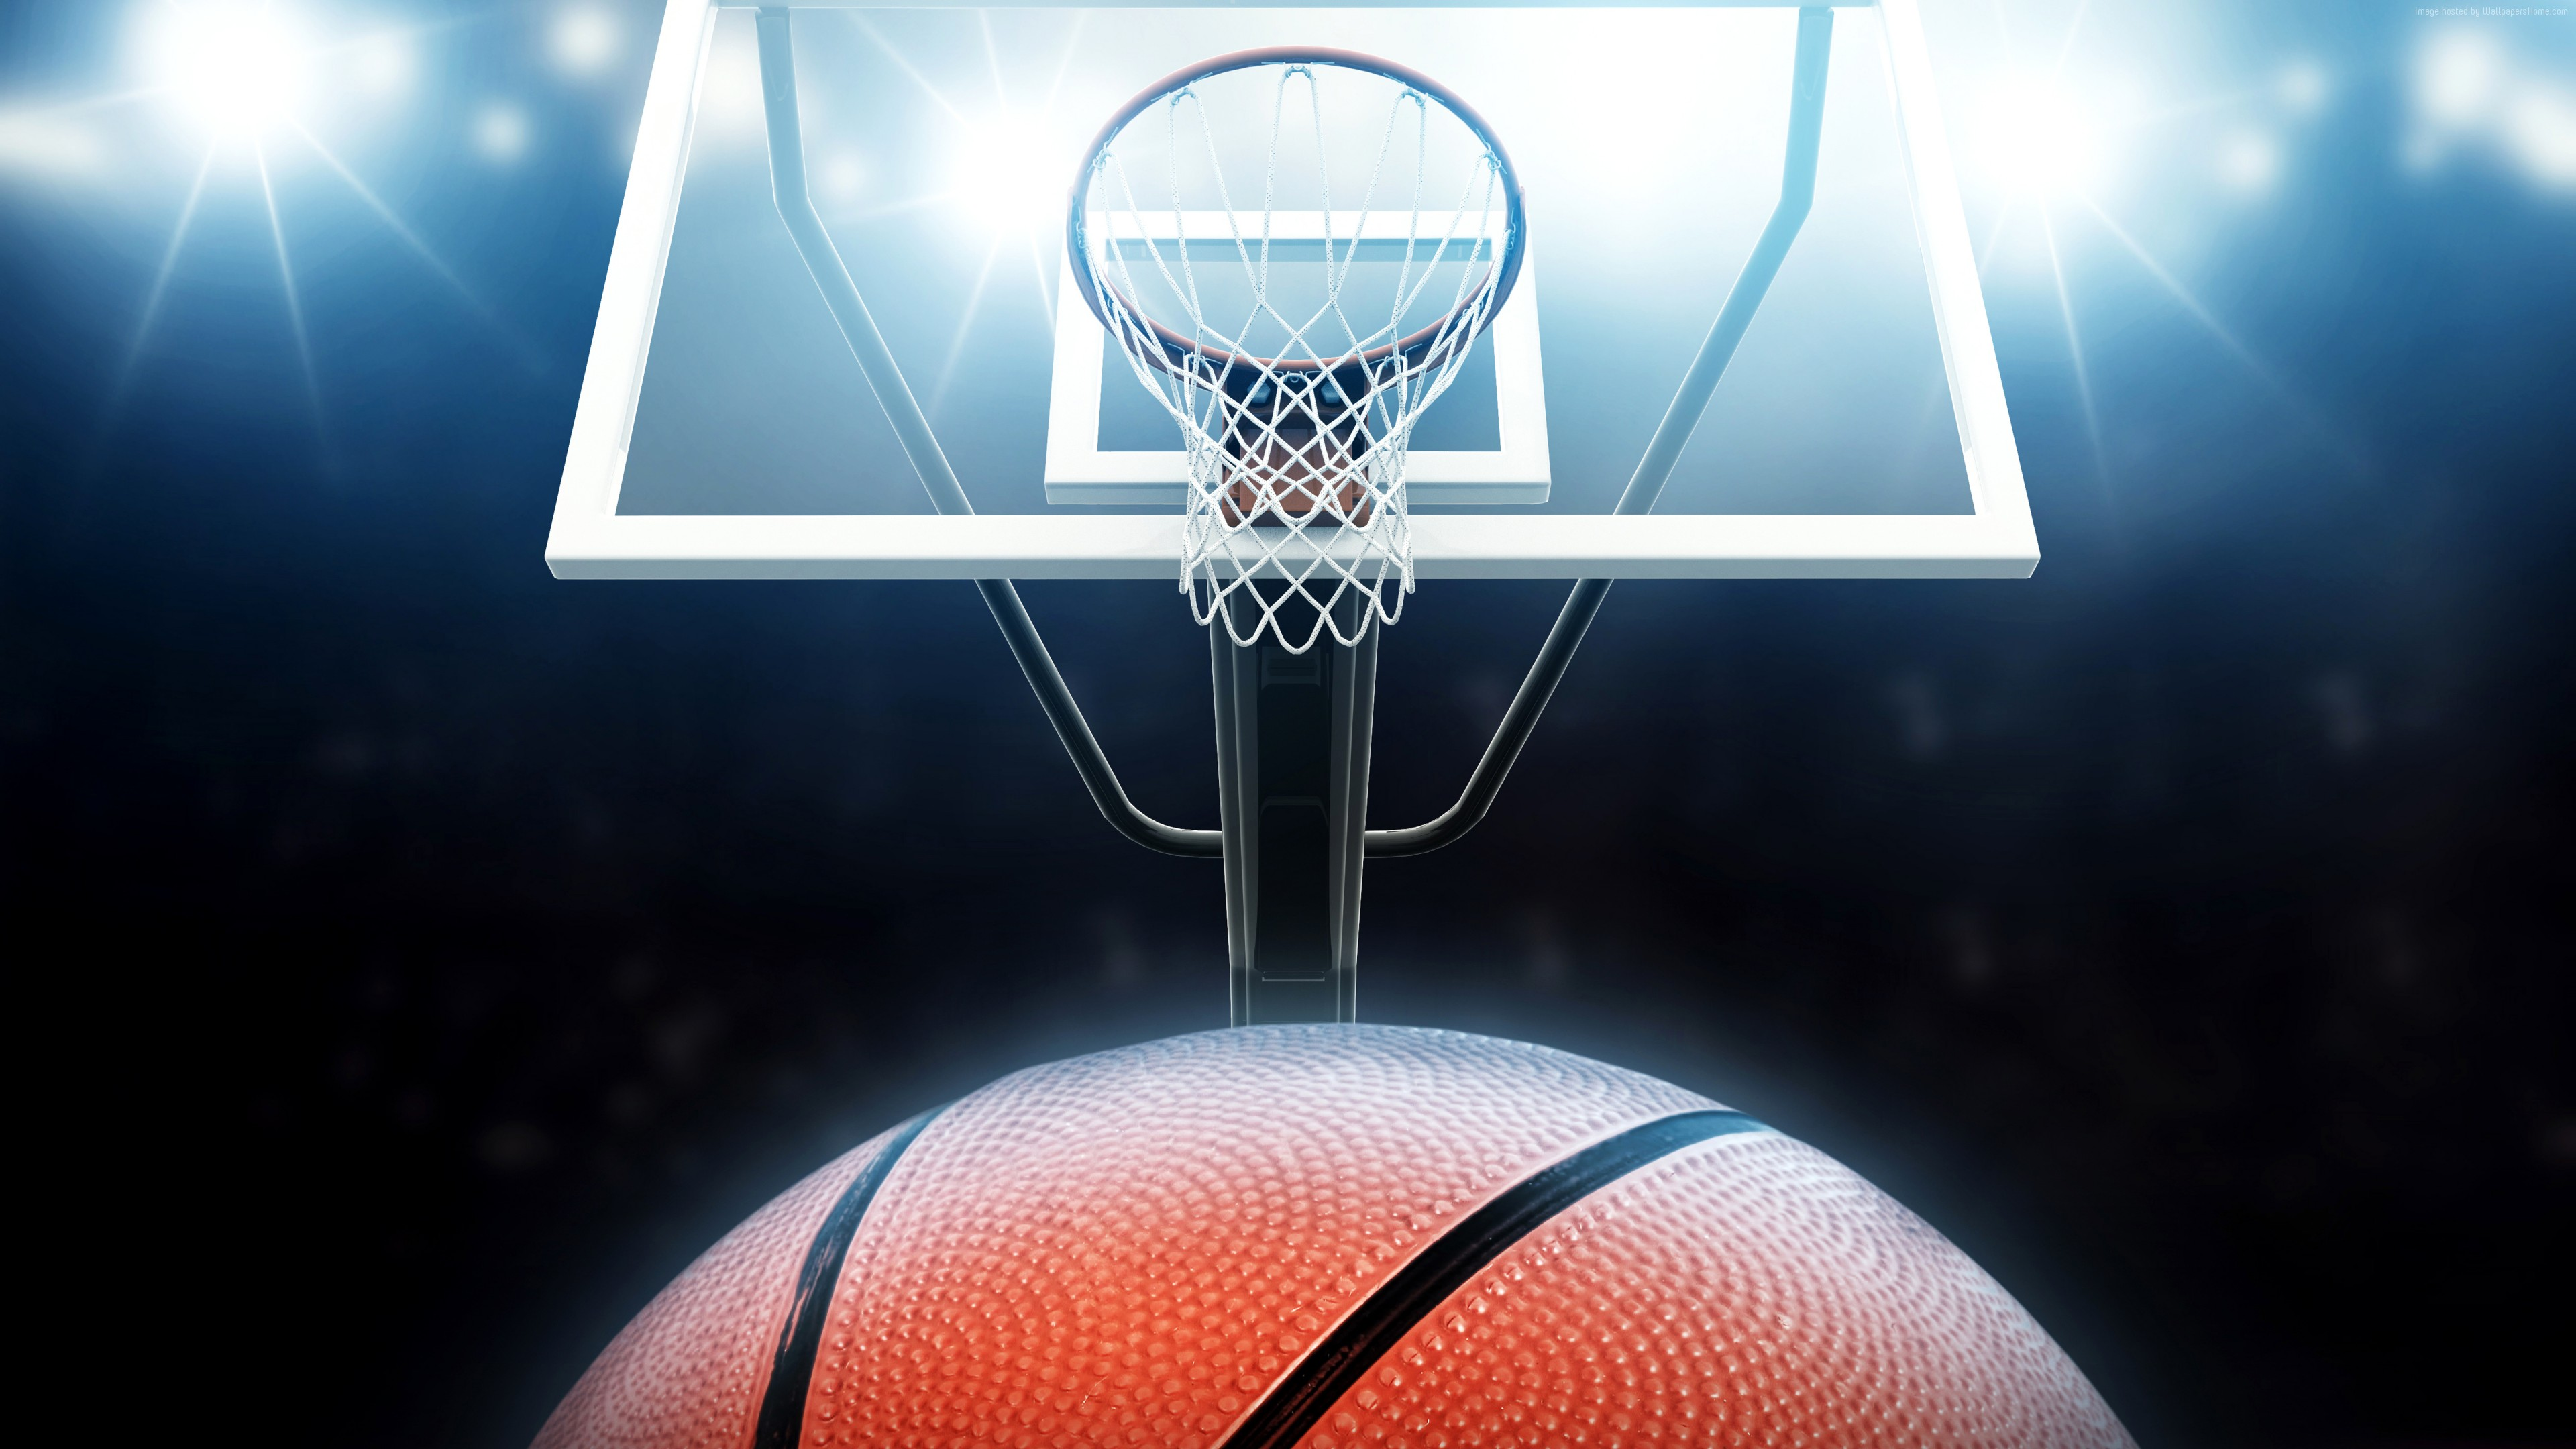 basketball 4k 1538786727 - Basketball 4k - sports wallpapers, basketball wallpapers